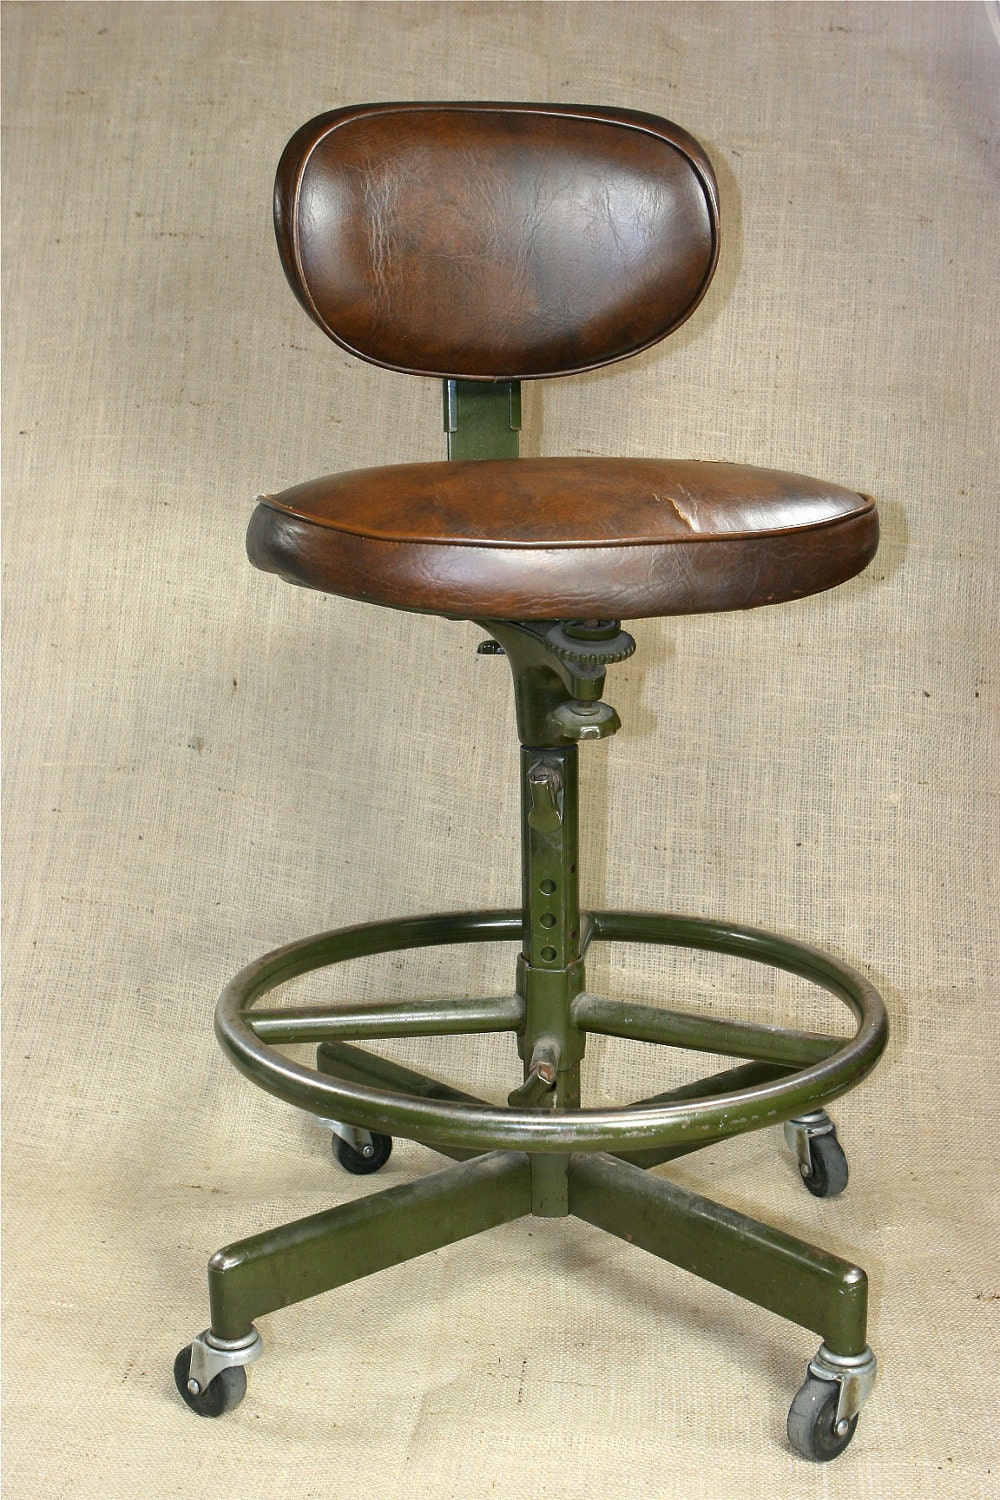 Fantastic Vintage Industrial Age Cramer Adjustable Swivel Drafting Machinist Stool - BarnAndBox